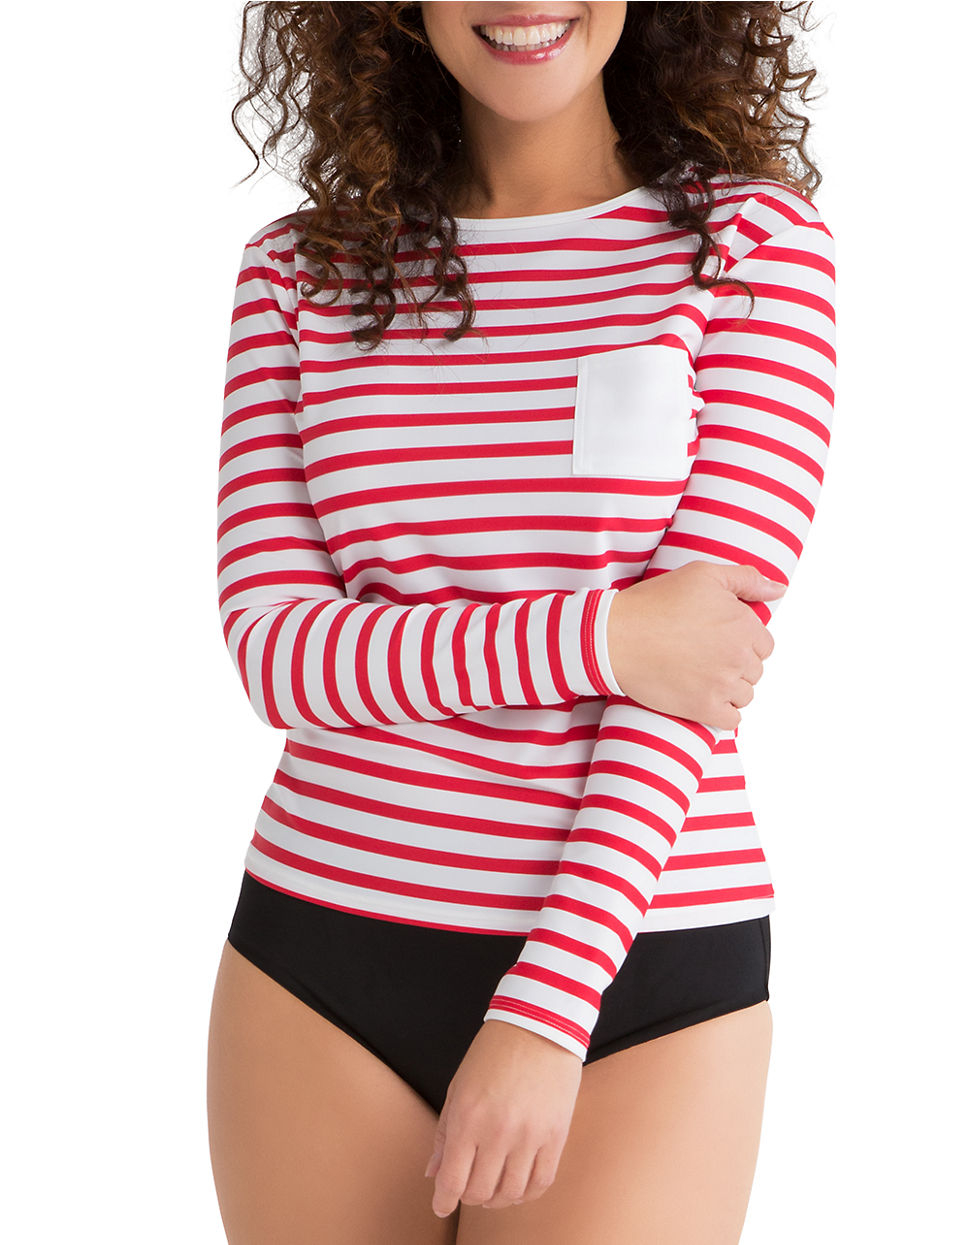 Spanx Striped Sun Shirt in Red